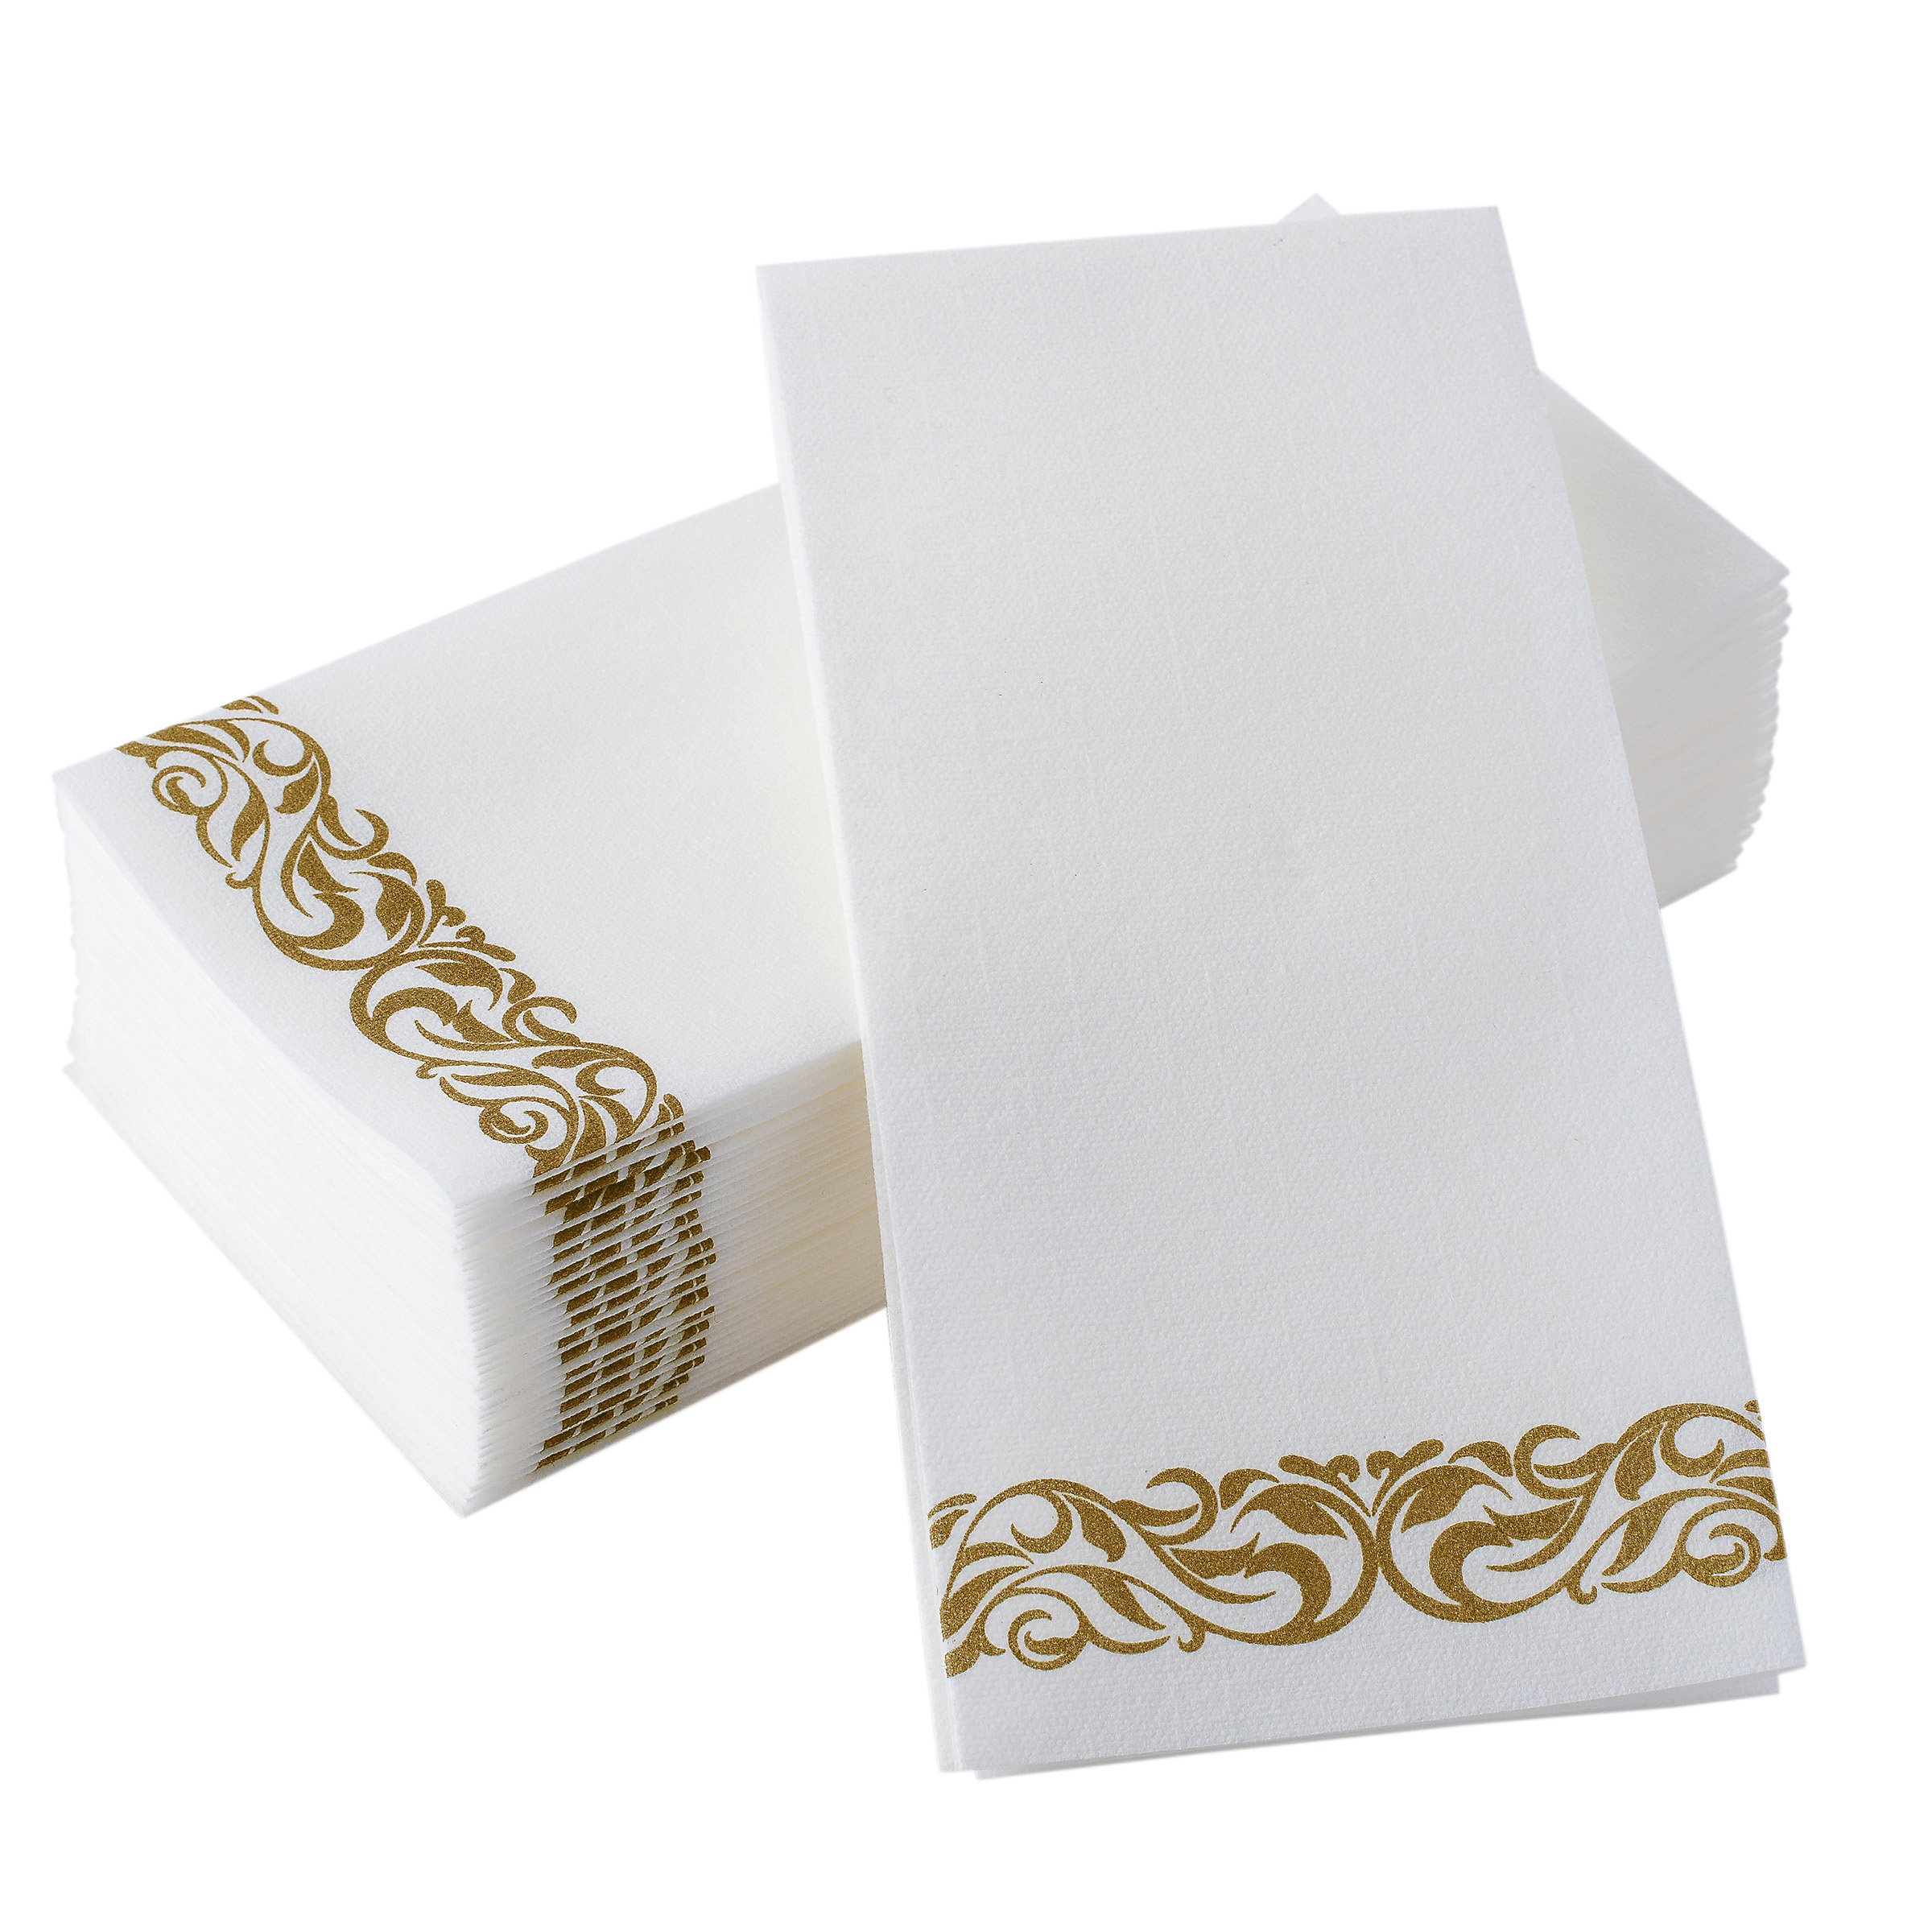 Bloomingoods Disposable Linen-Feel Guest Towels - Decorative White Hand Towels, Gold Floral Cloth-Like Paper Napkins - Case of 1000 (Bulk Packaging)